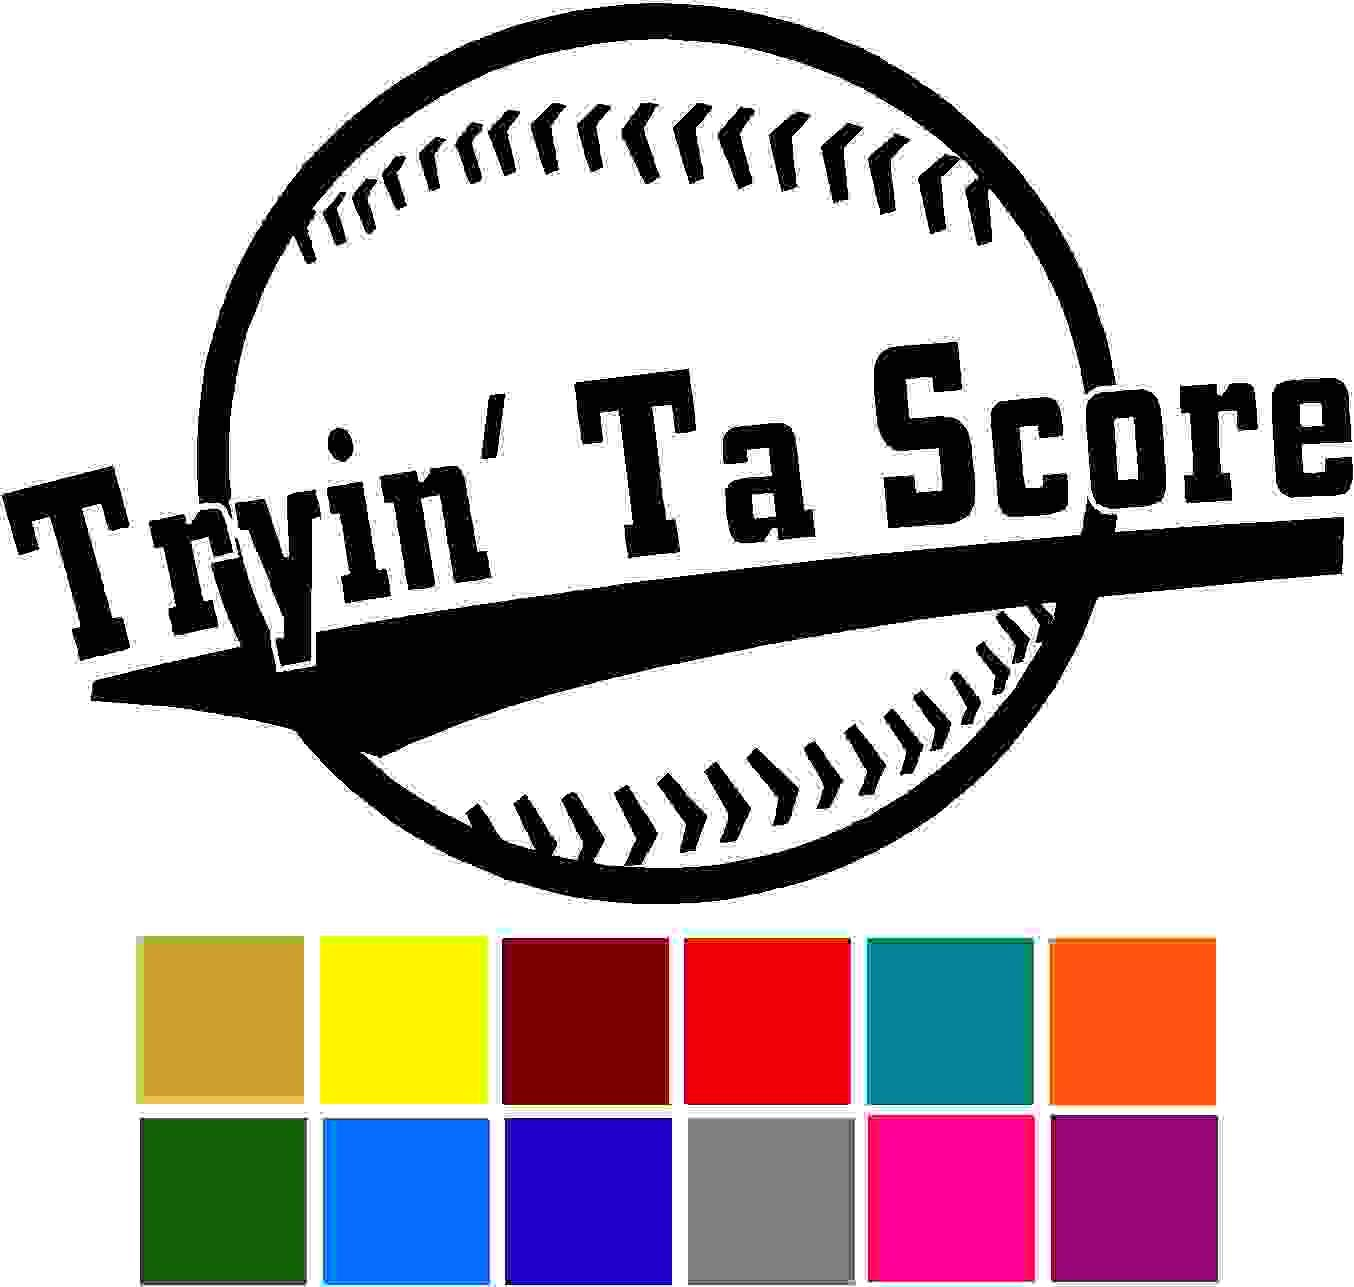 Trying Ta Score Decal Sticker Vinyl Car Window Tumblers Wall Laptops Cellphones Phones Tablets Ipads Helmets Motorcycles Computer Towers V and T Gifts